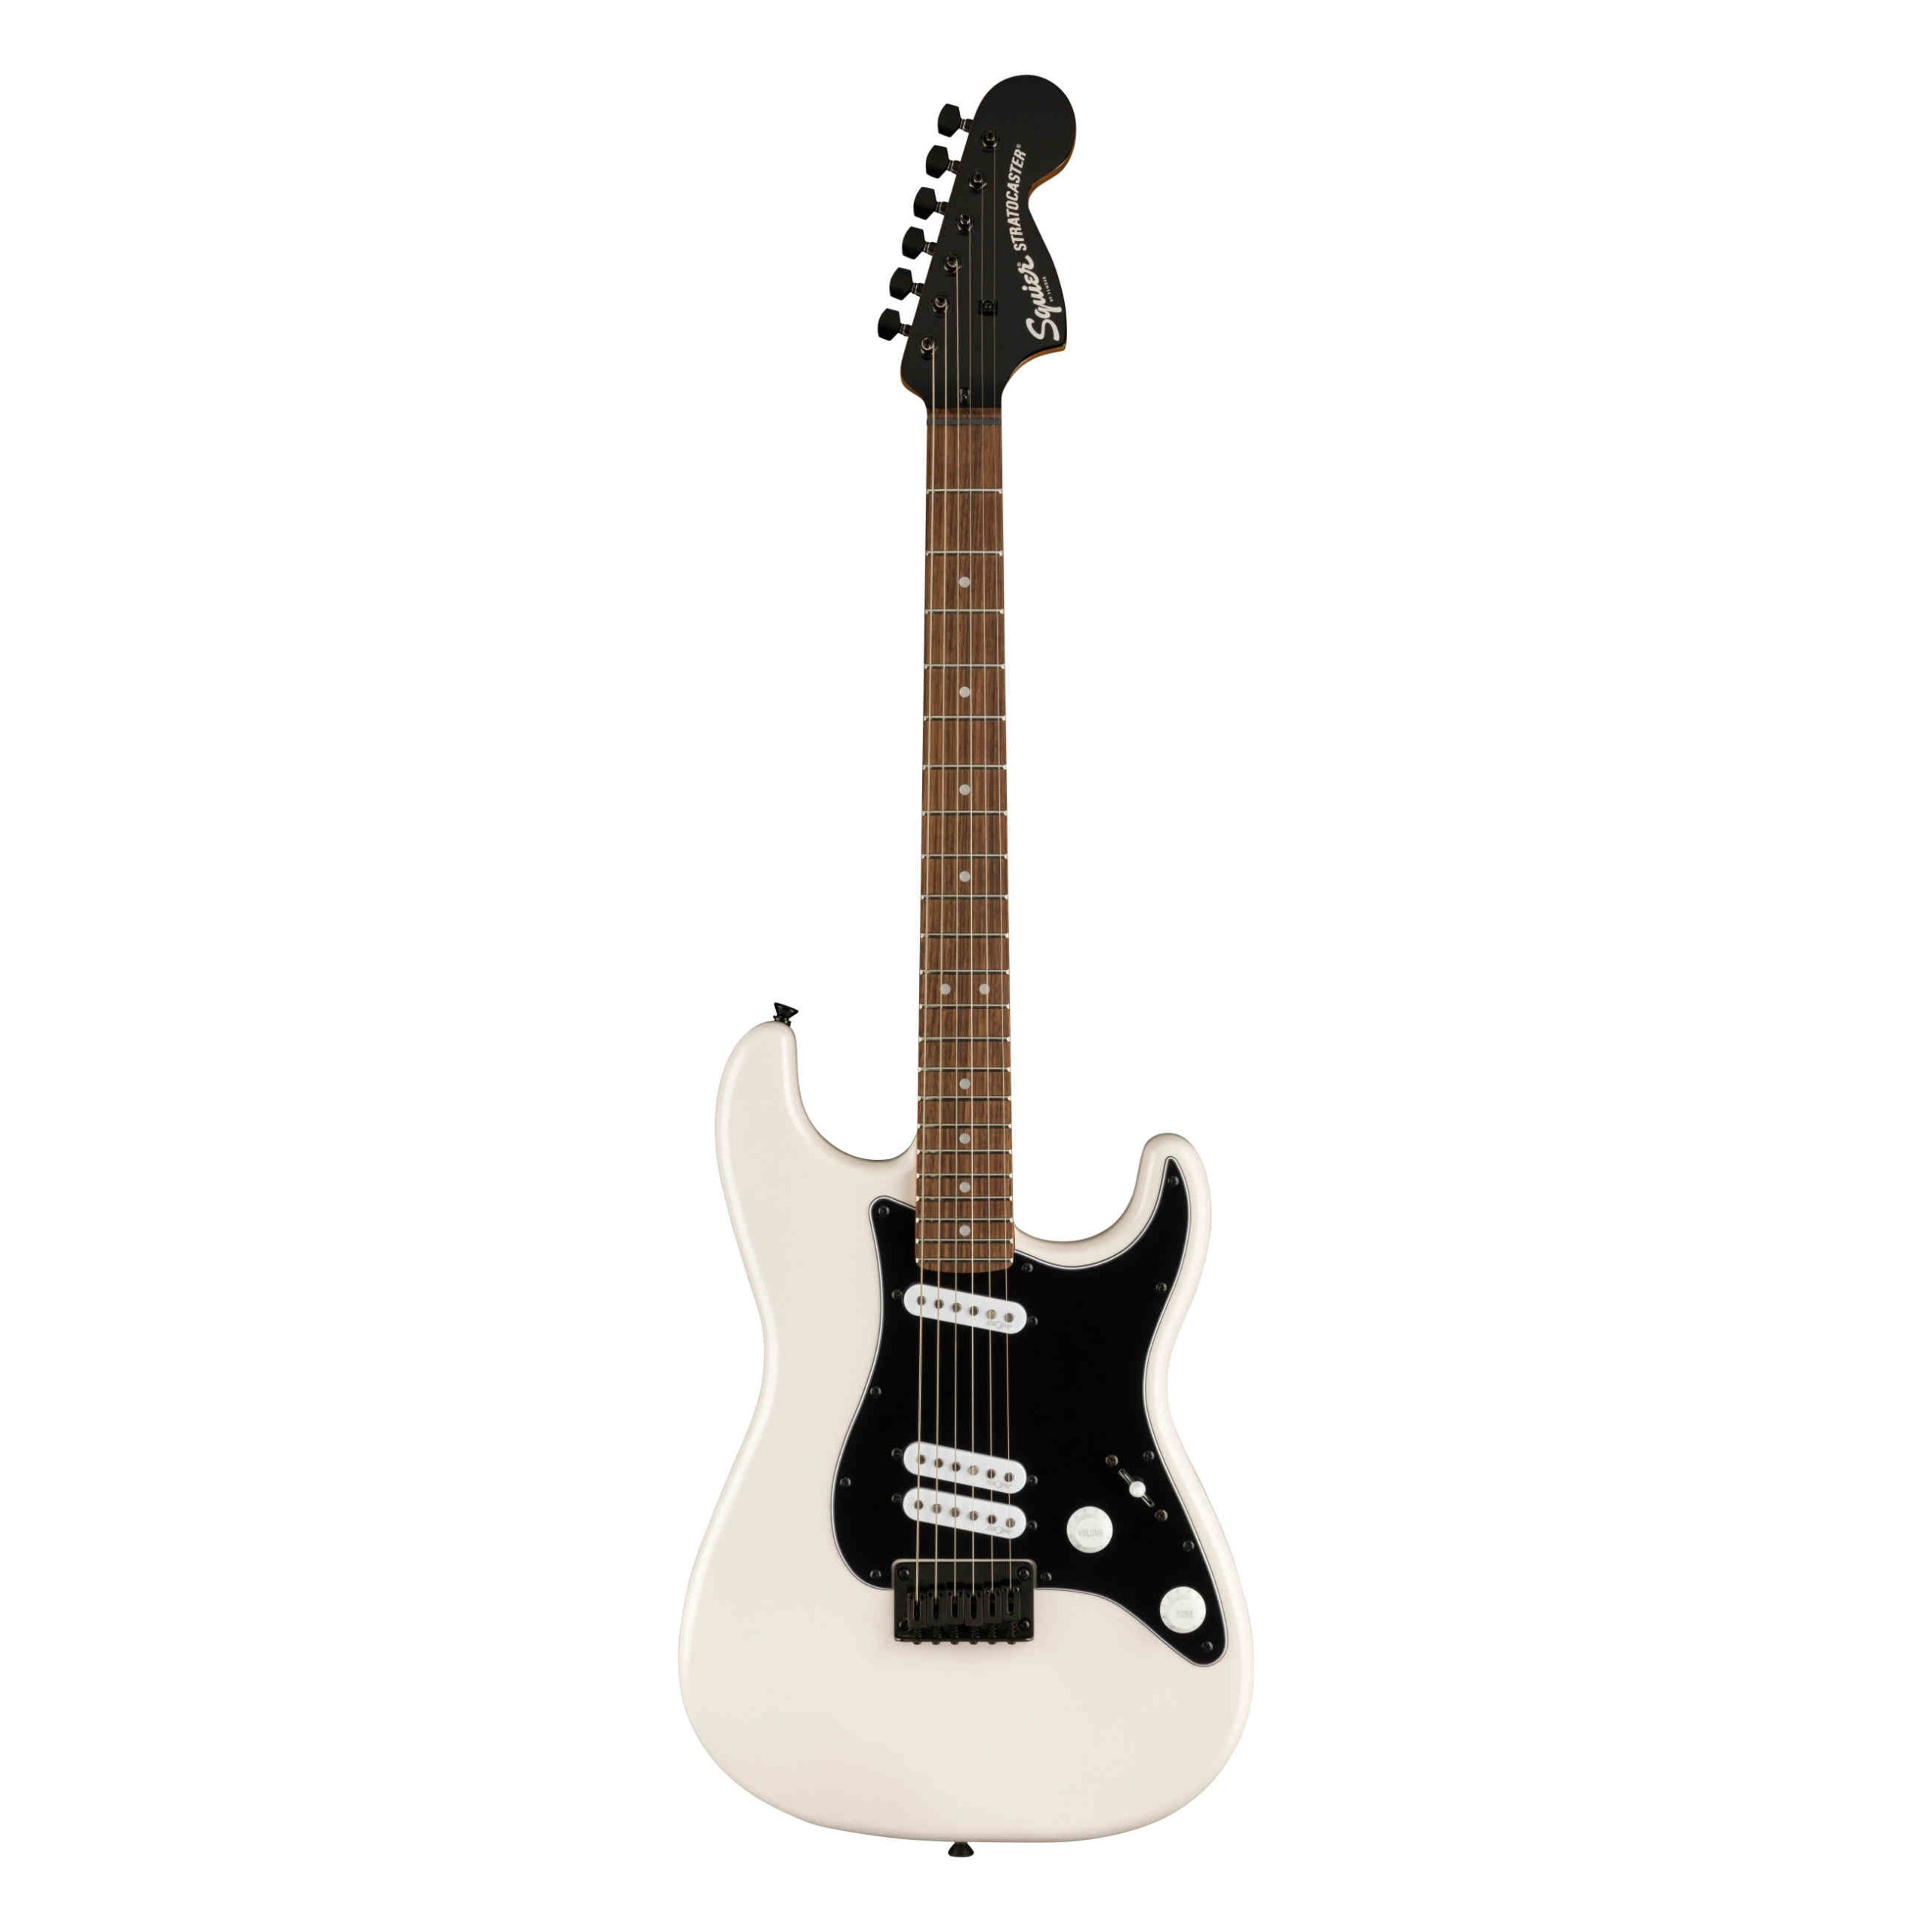 Squier Contemporary Stratocaster® Special HT, Indian Laurel Fingerboard, Pearl White